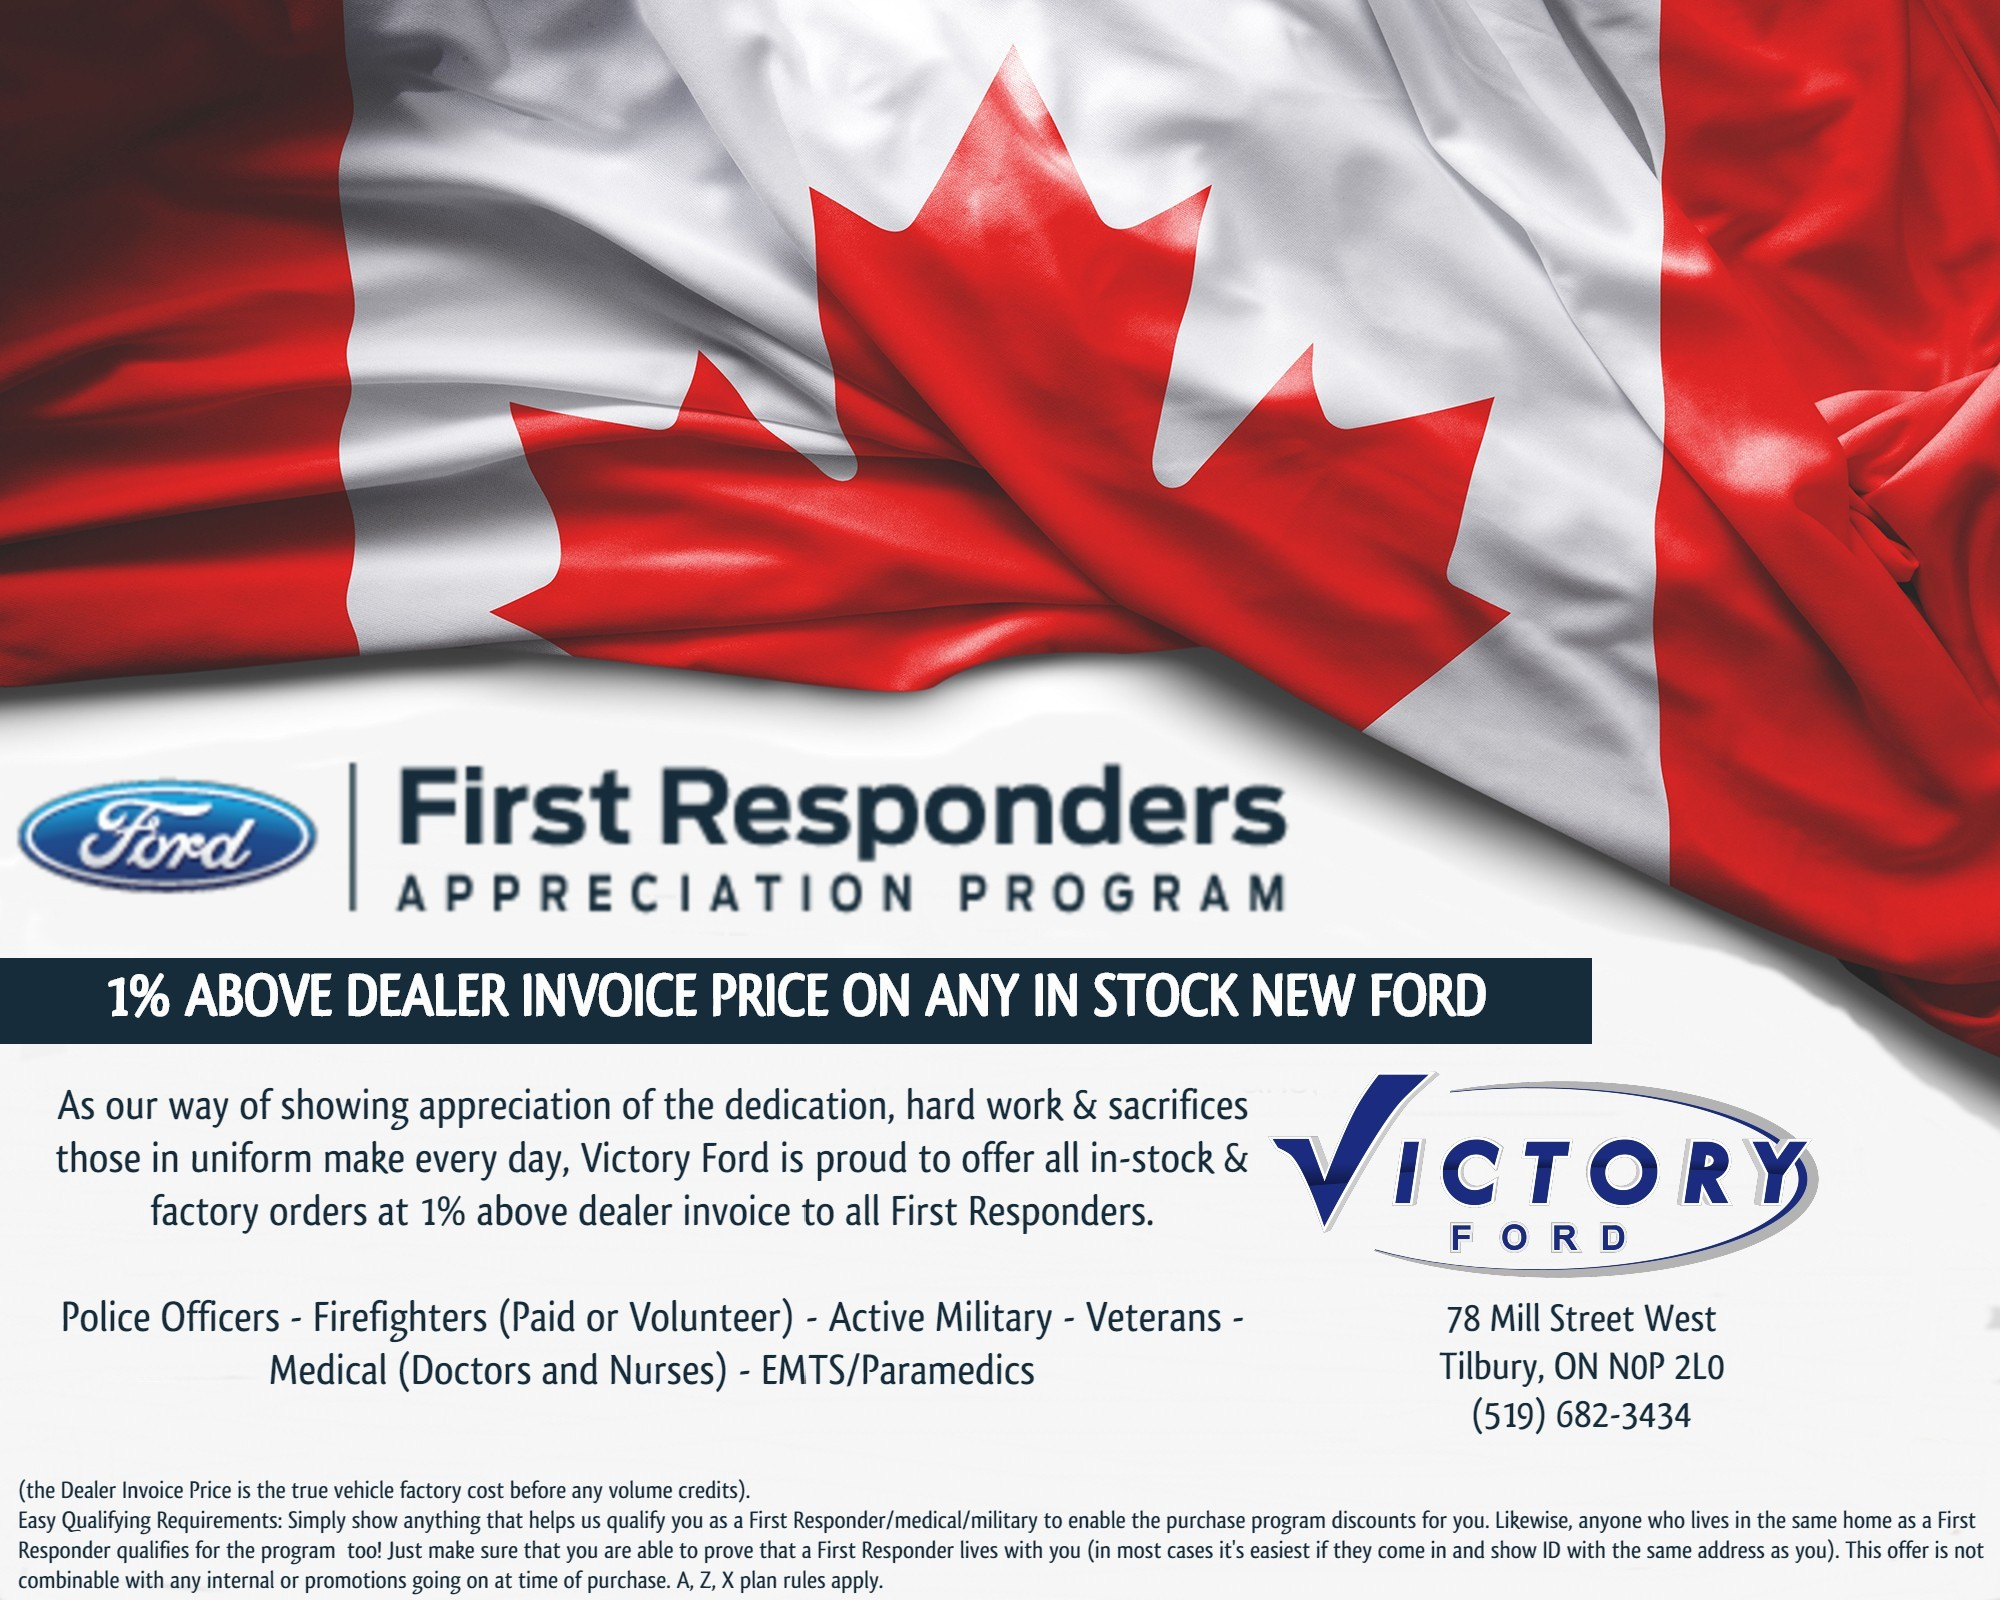 Victory Ford Military & First Responder Discount